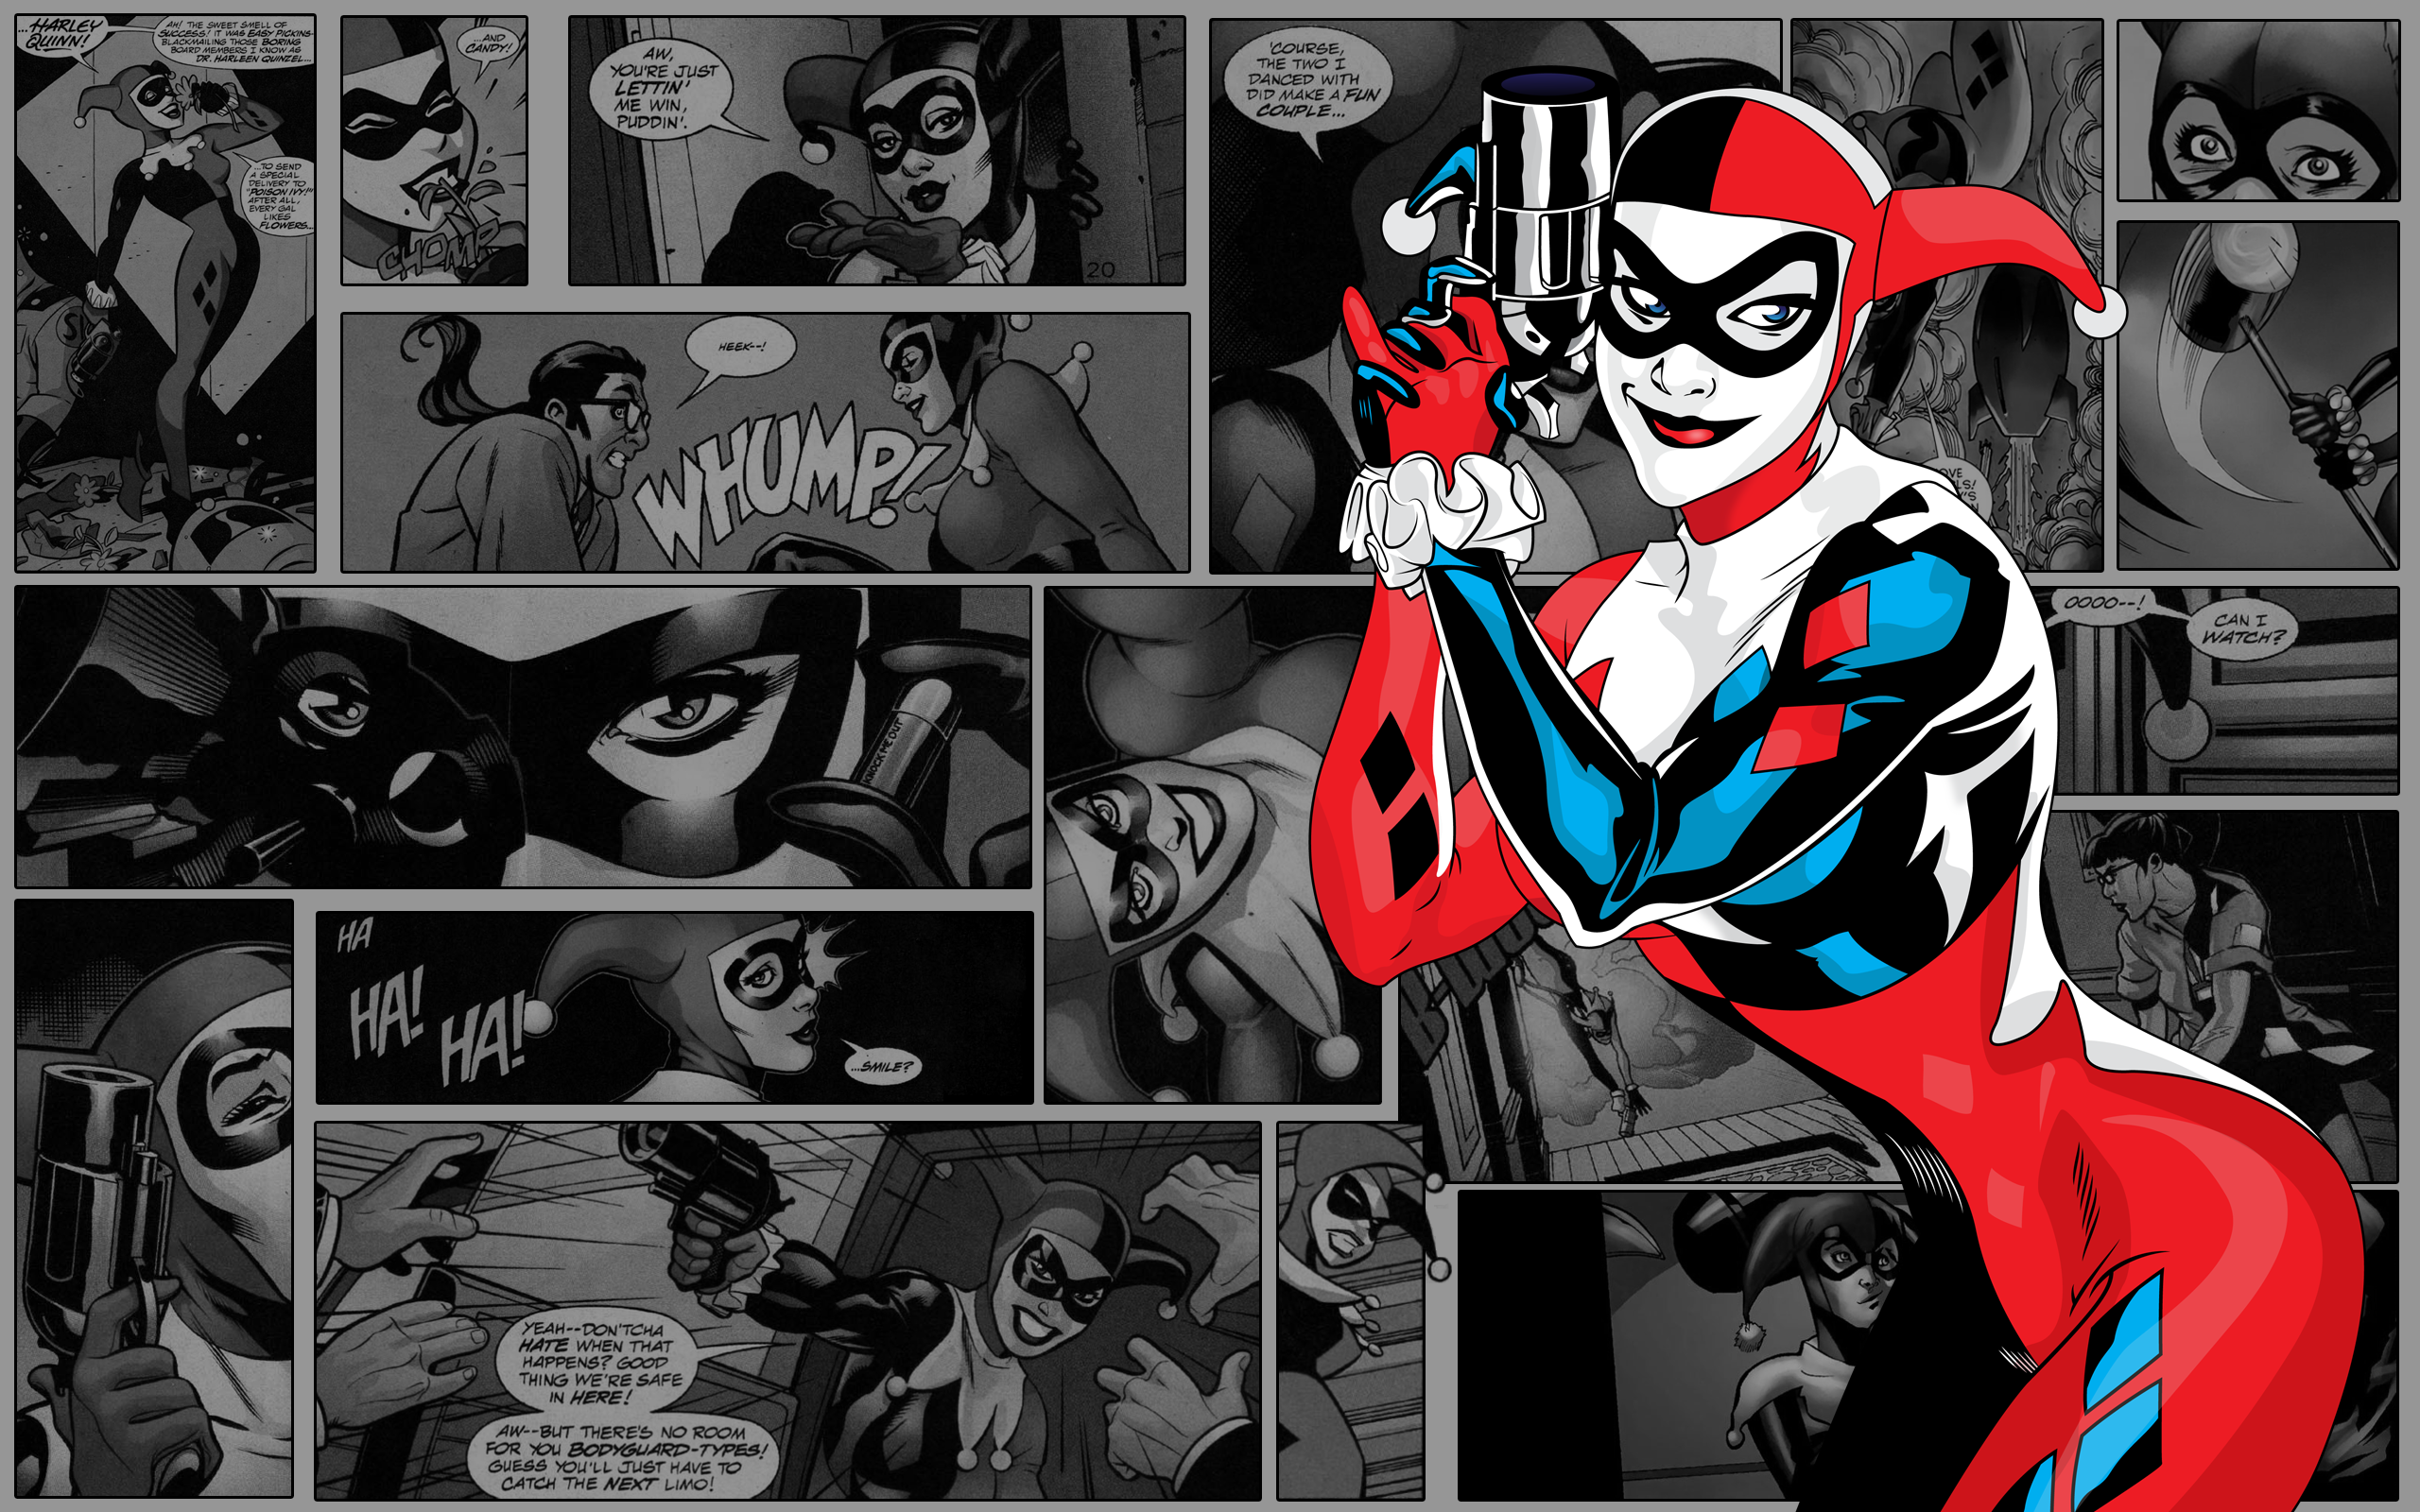 17 Best images about Harley Quinn on Pinterest | Popular